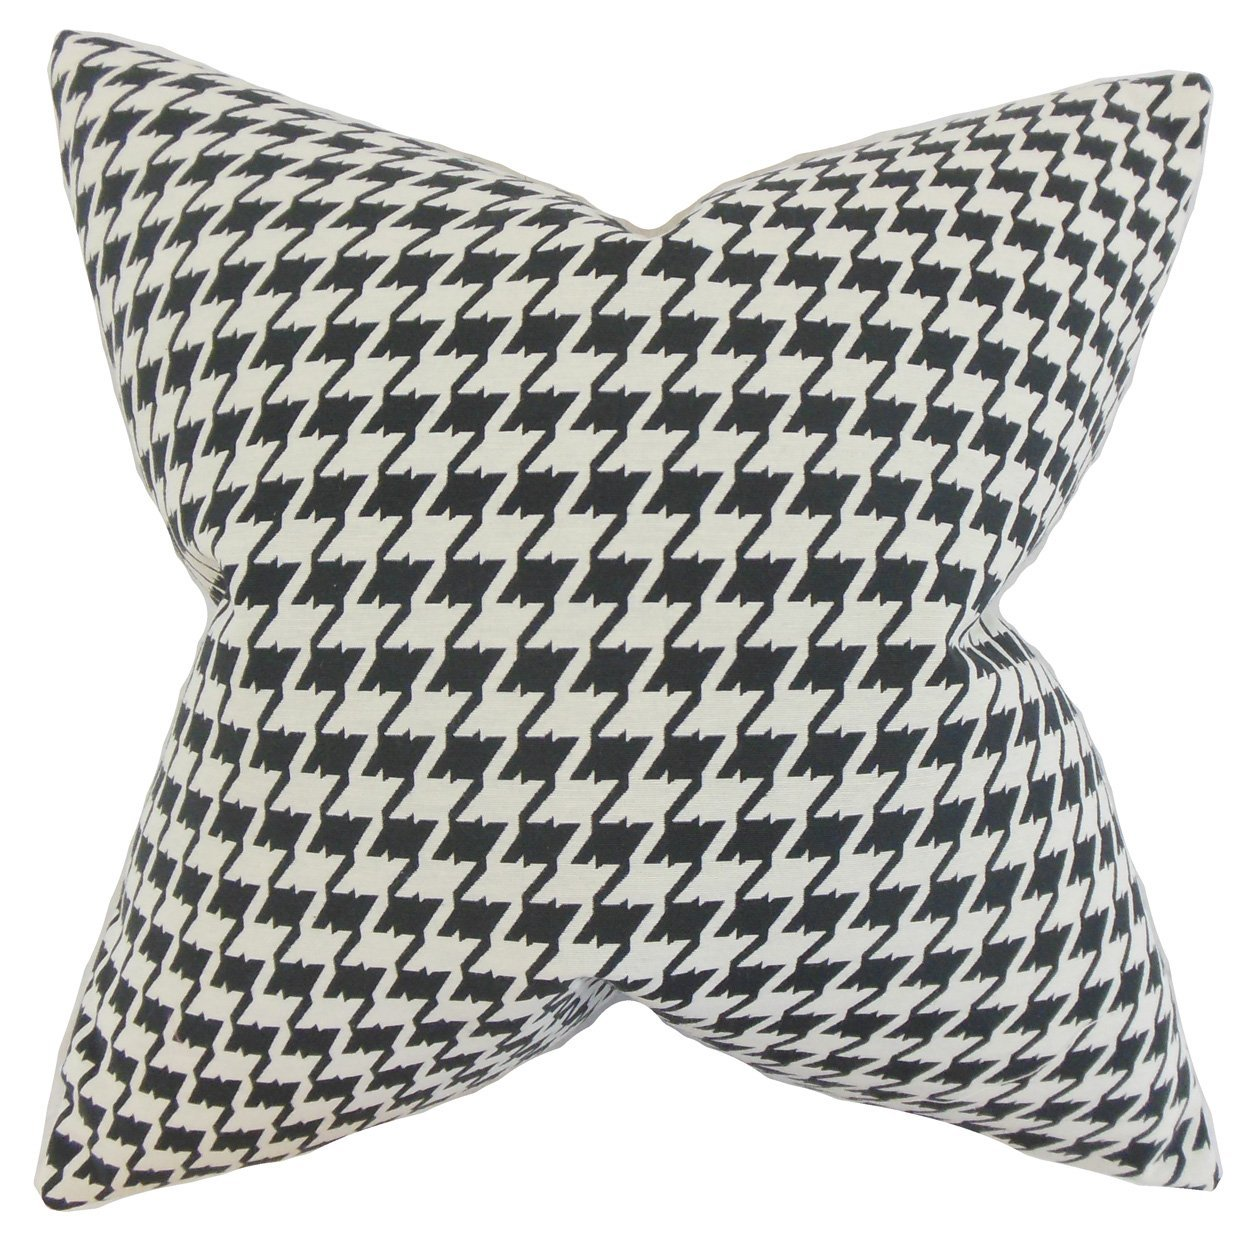 The Pillow Collection Presley Houndstooth Bedding Sham Black Queen//20 x 30